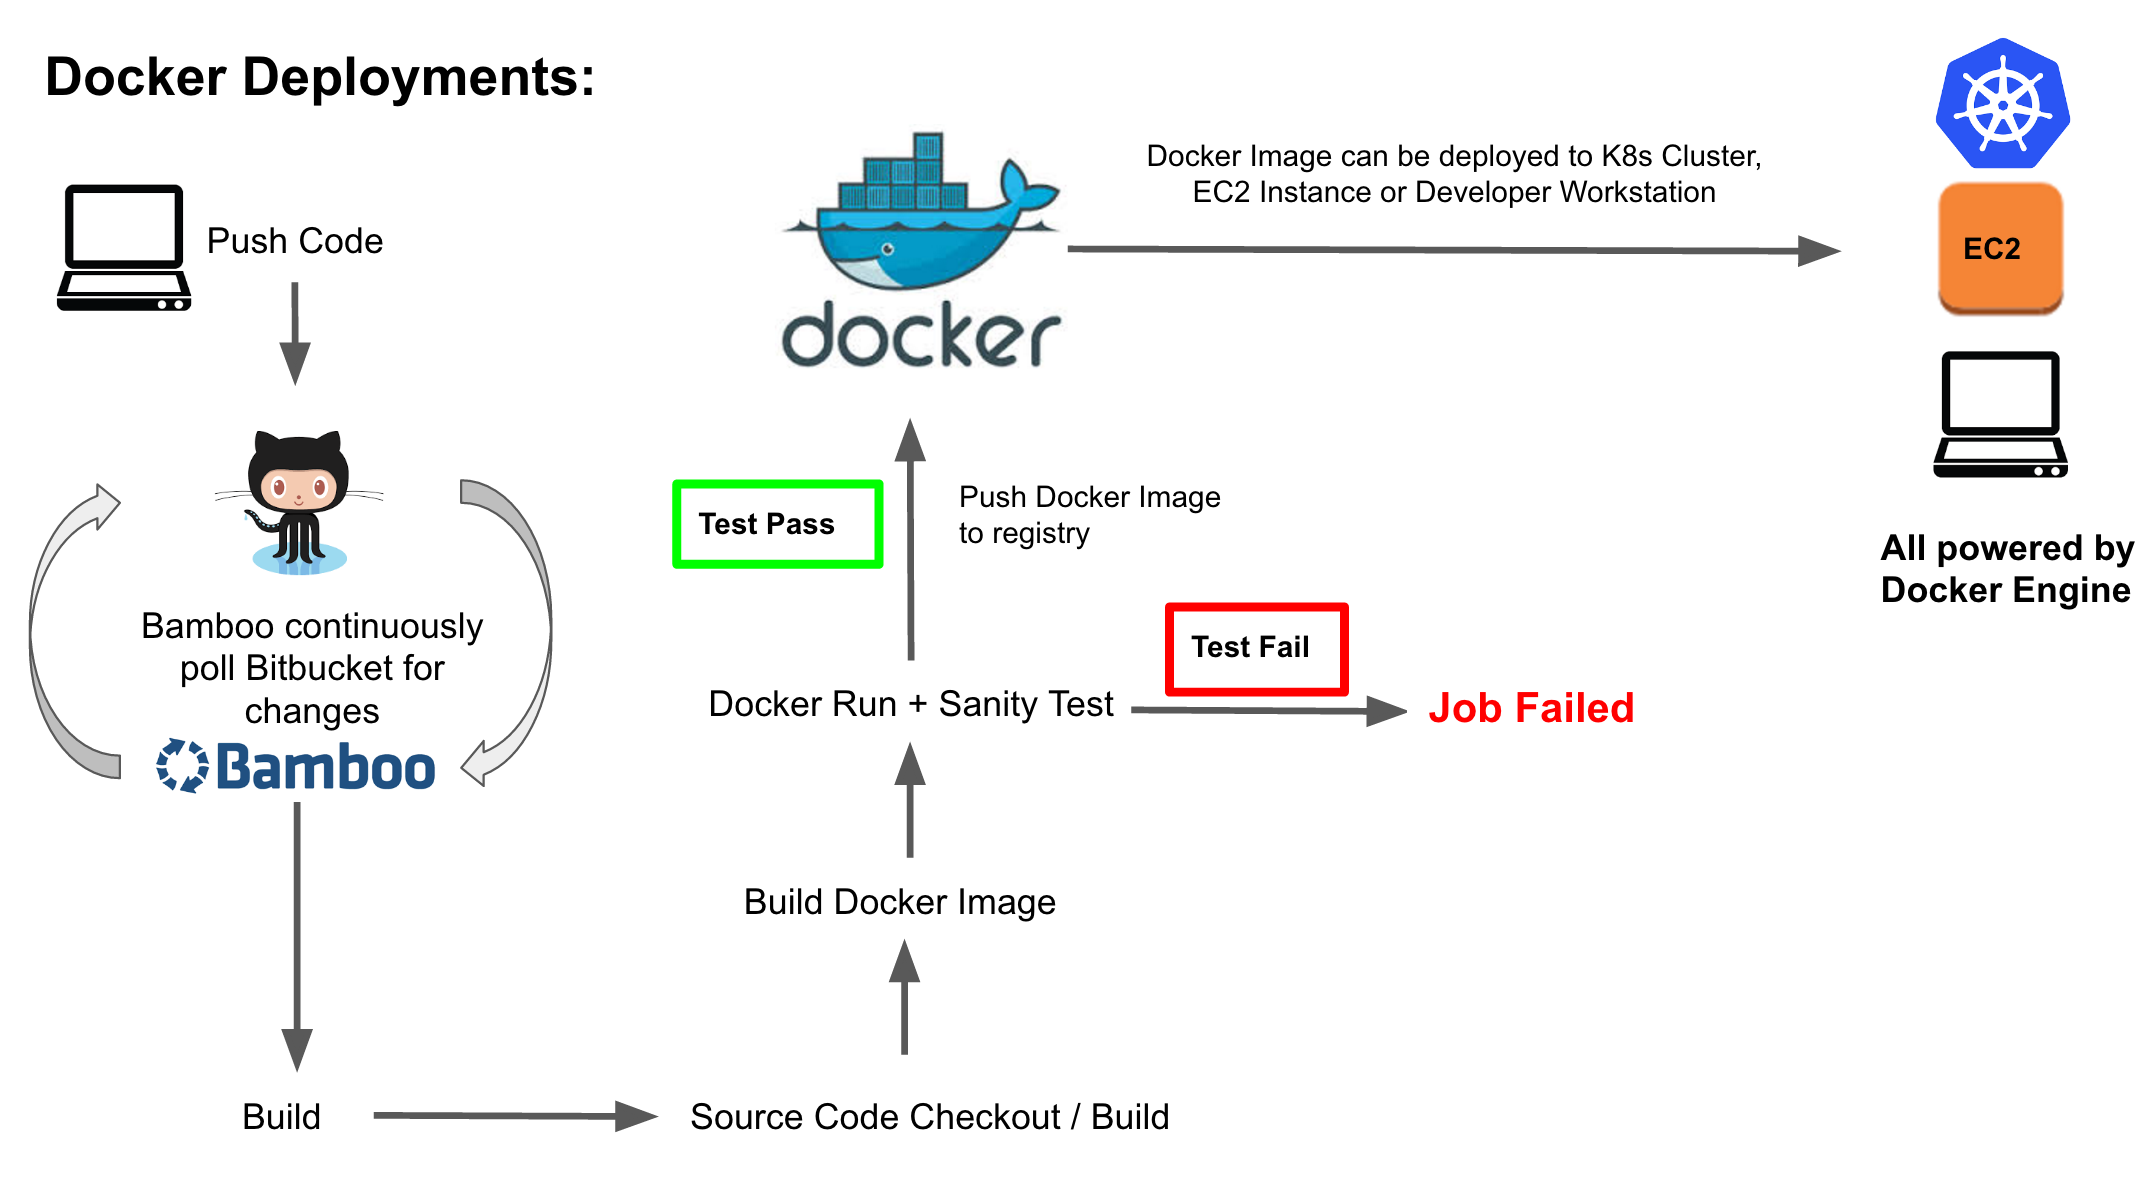 How To Automate Docker Deployments in AWS ECS | TO THE NEW Blog